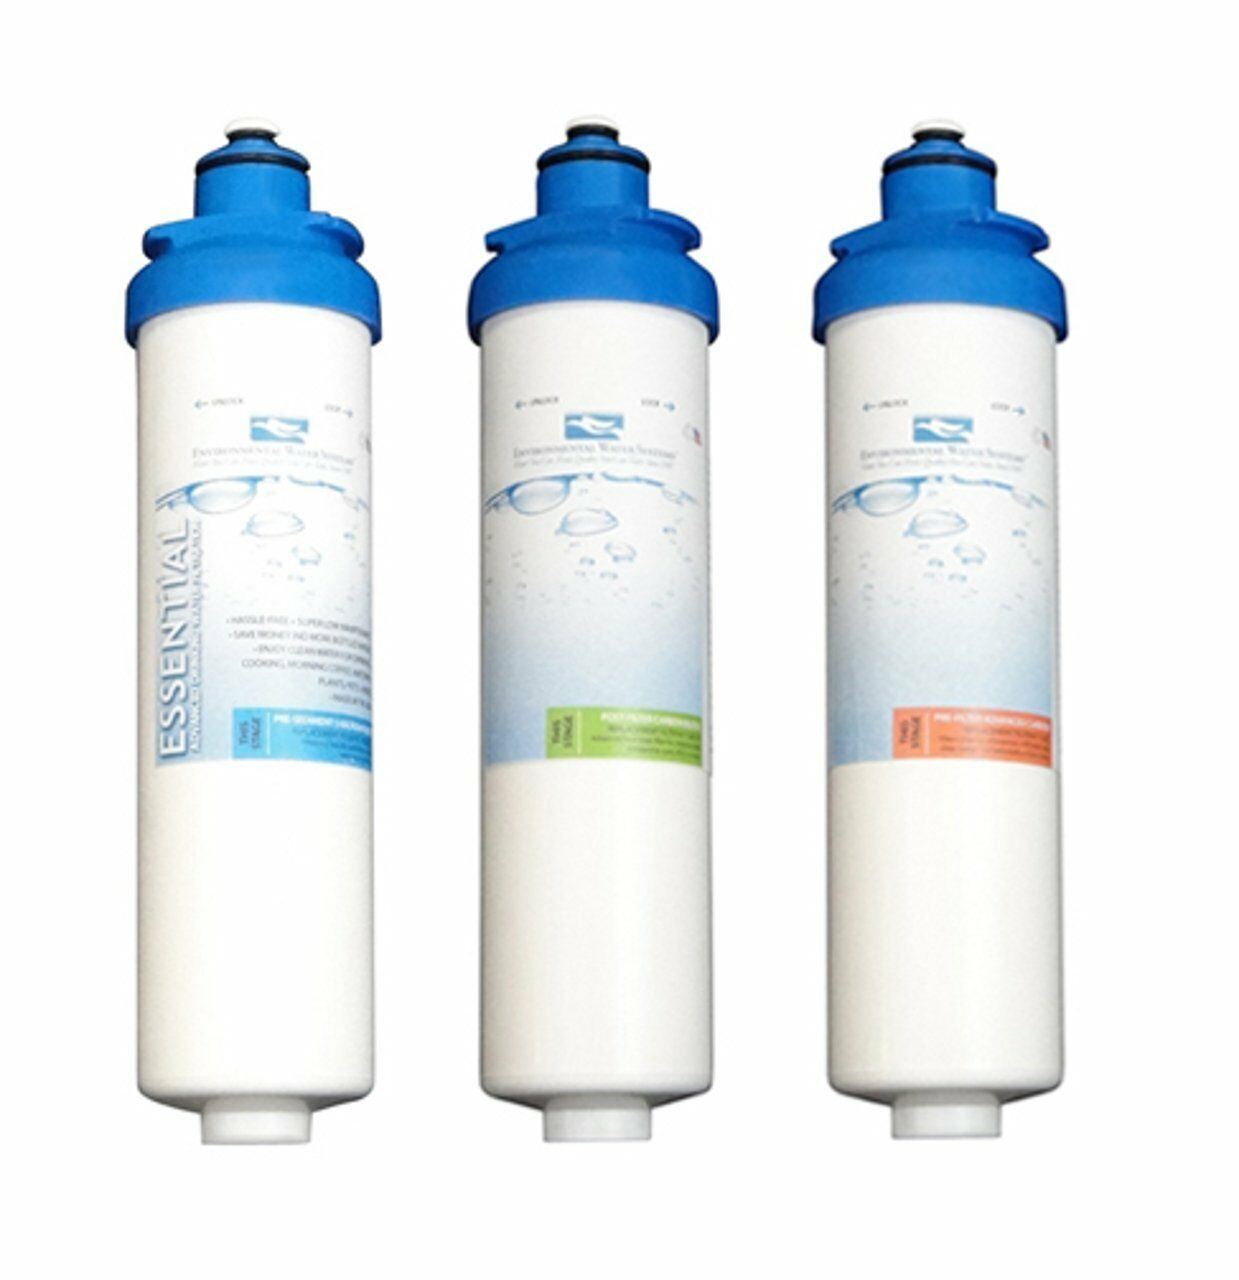 Environmental Water Systems F. Set. DWS Remplacement Kit De Filtre Pour DWS F. Set. DWS